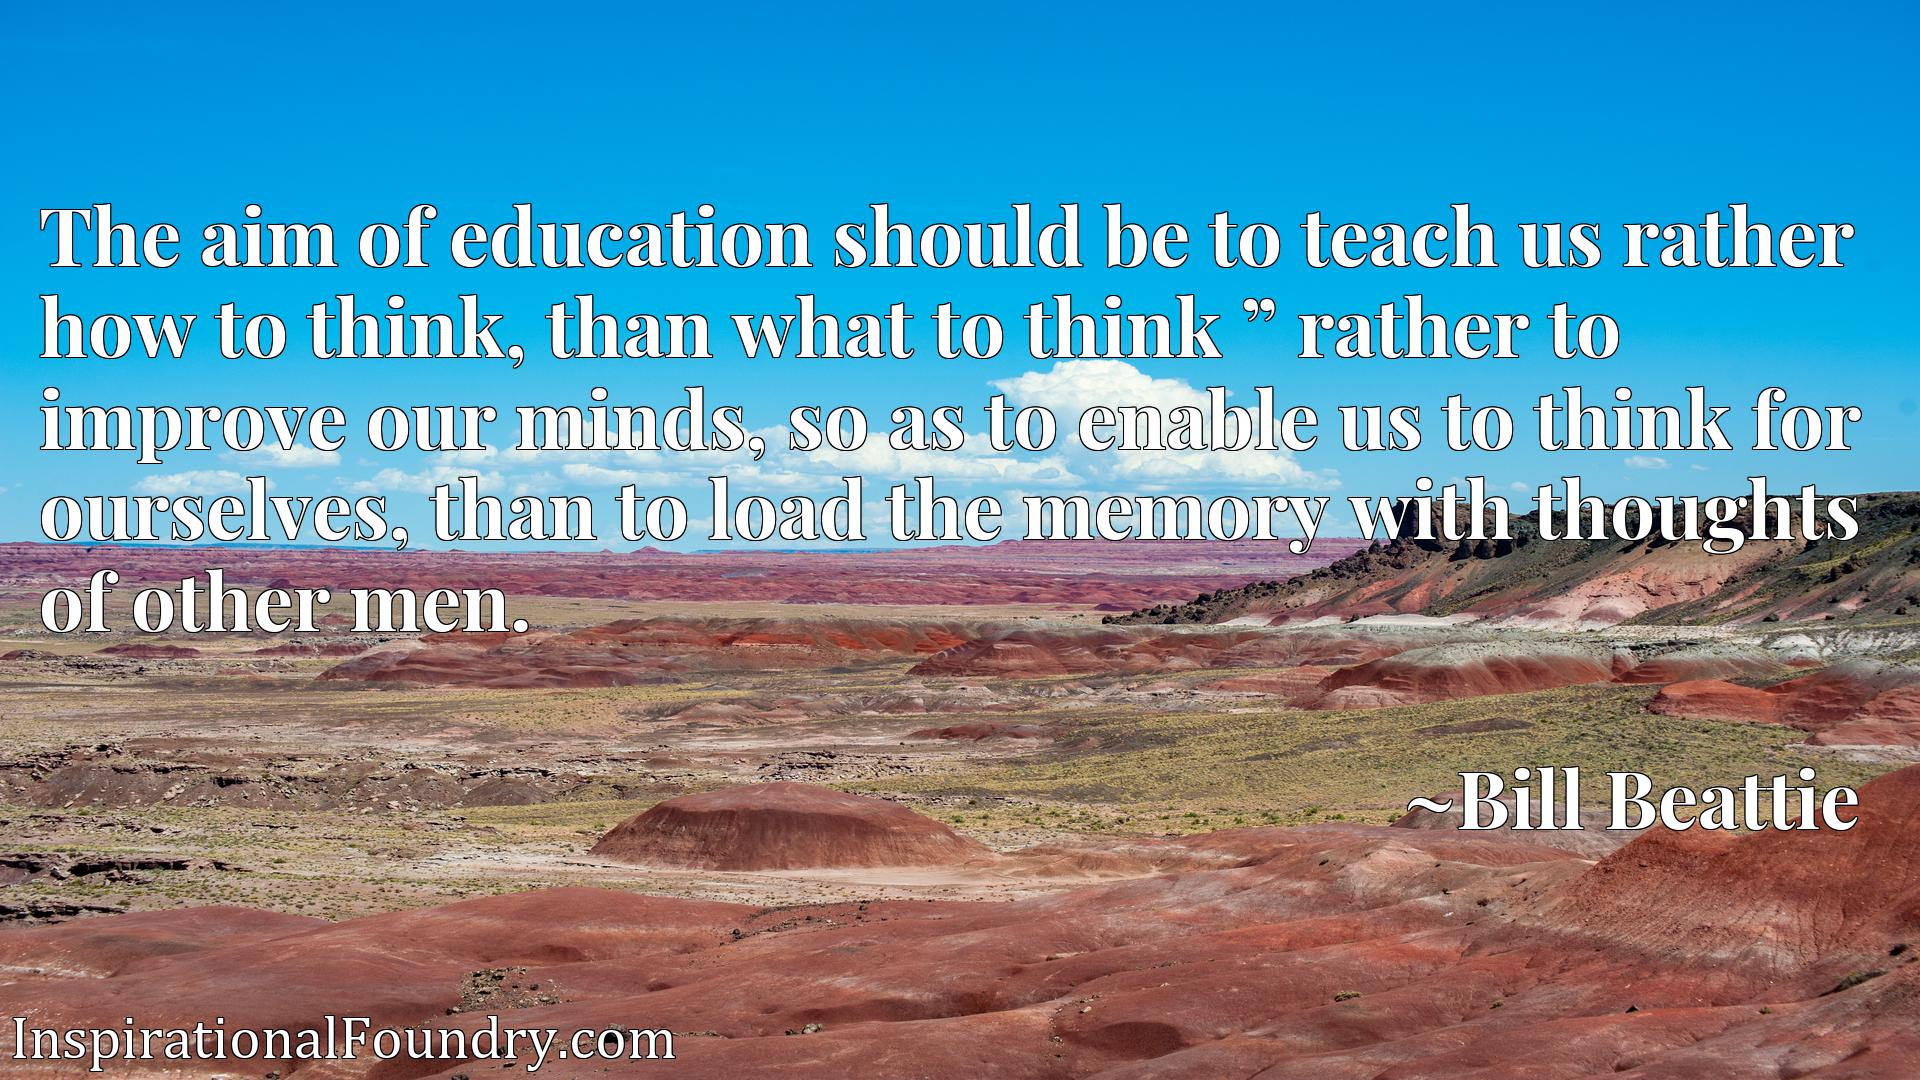 "The aim of education should be to teach us rather how to think, than what to think "" rather to improve our minds, so as to enable us to think for ourselves, than to load the memory with thoughts of other men."